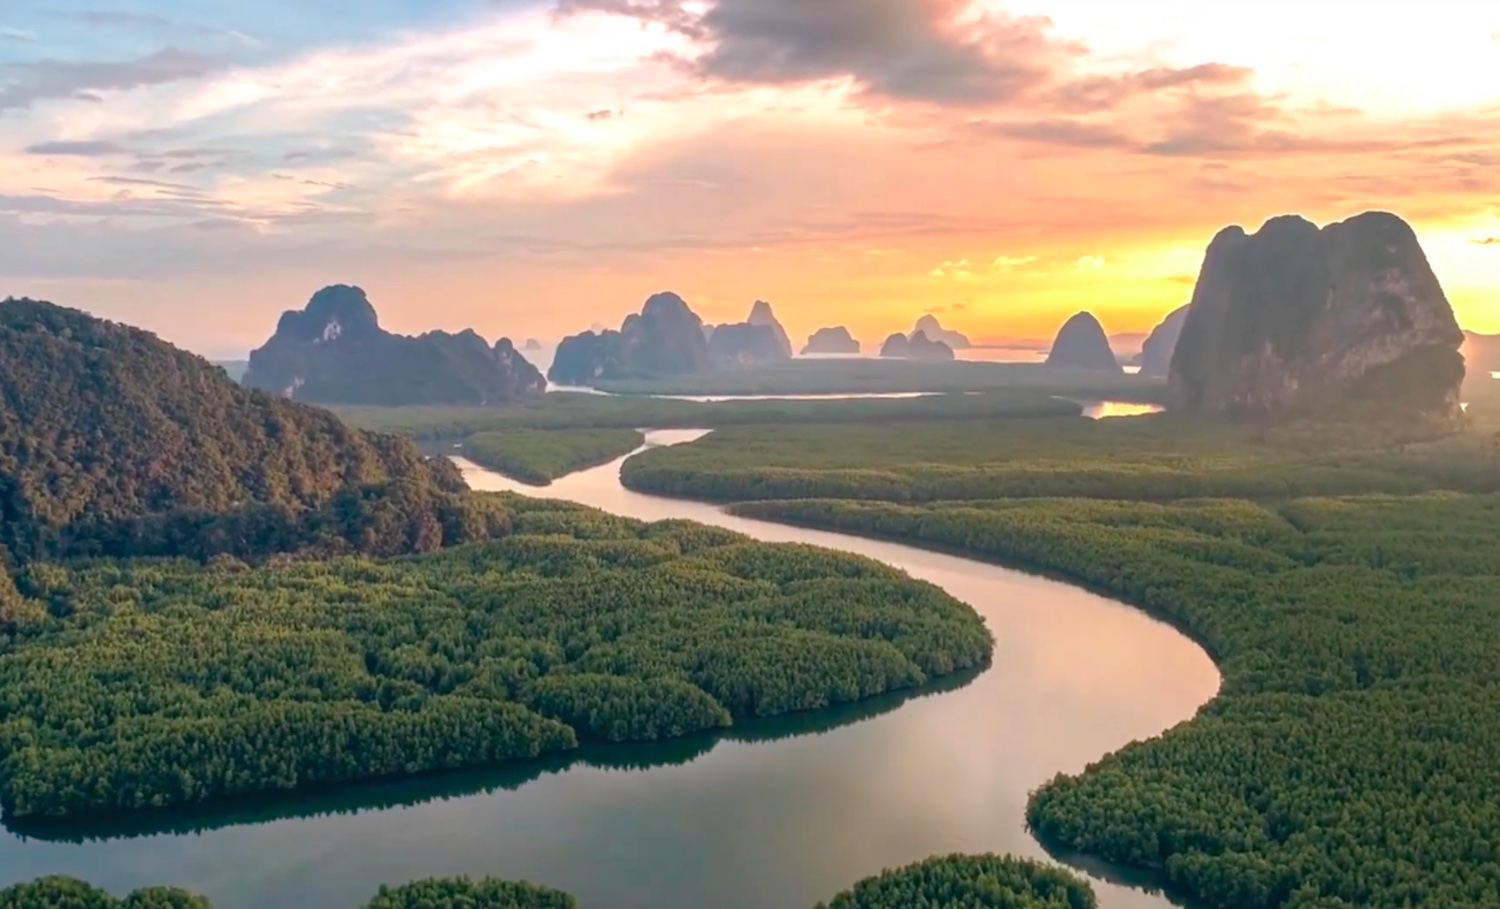 A sunset in Phangnga from the opening of the Miss You video released by the Tourism Authority of Thailand this week.